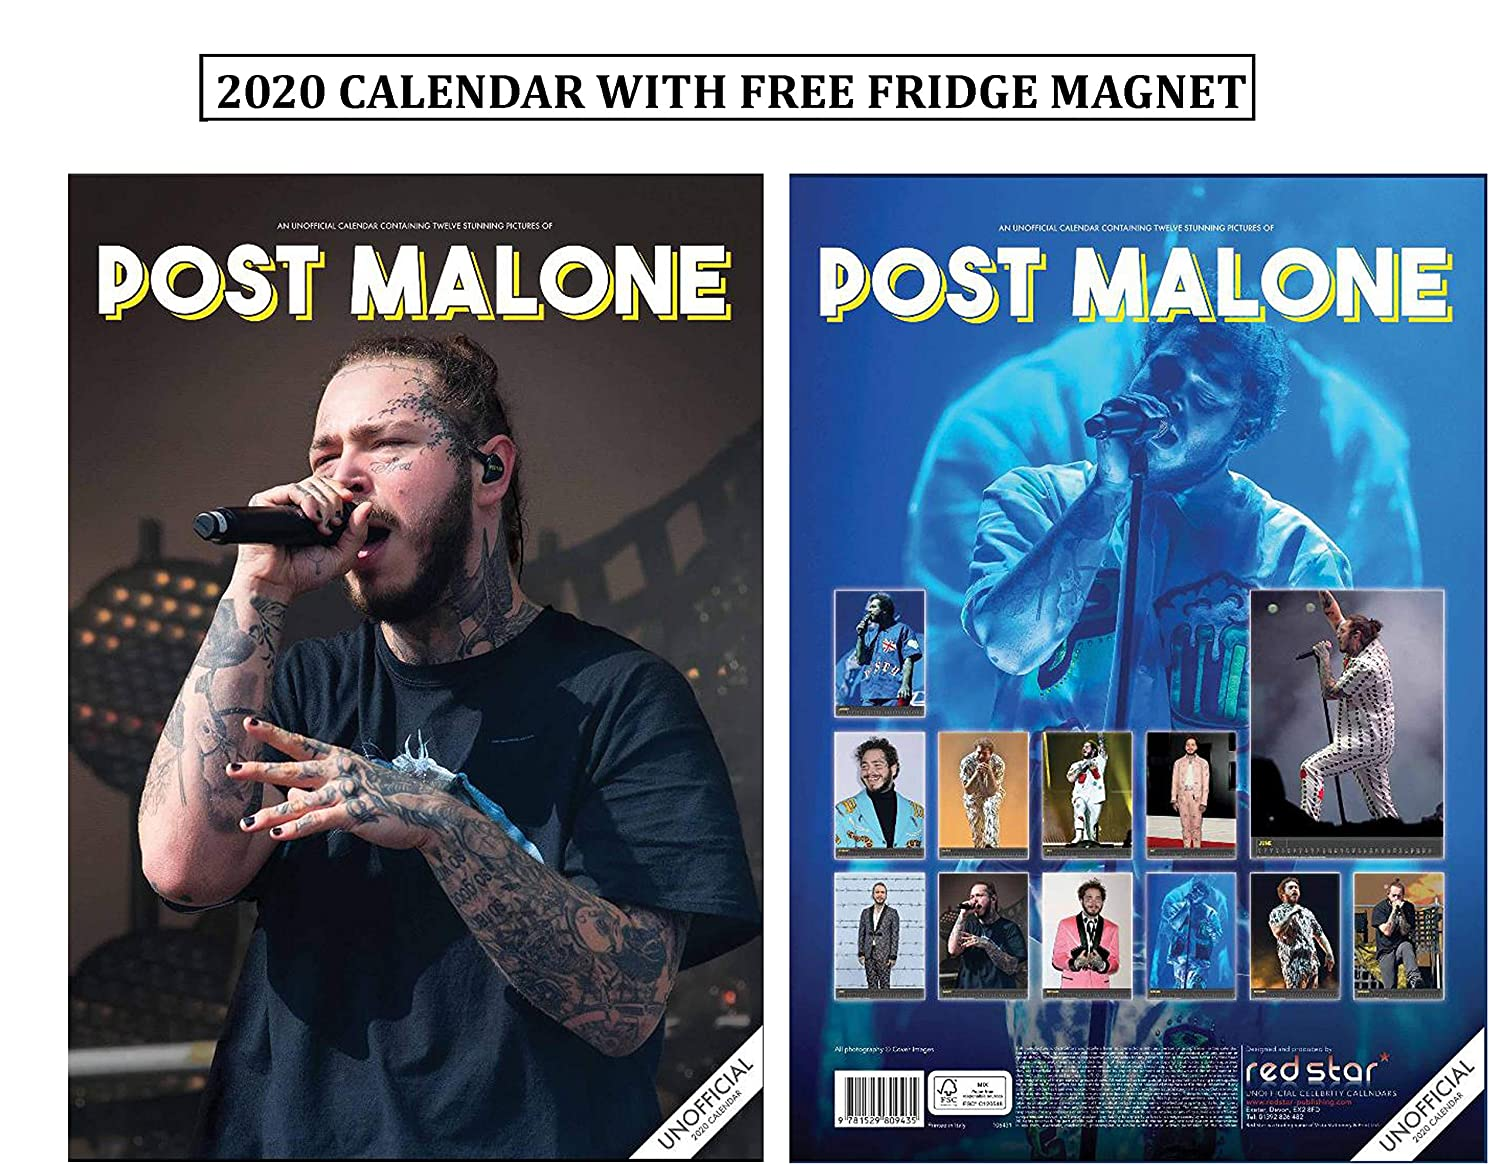 Post Malone Calendario 2020 With Post Malone Imán para Nevera ...